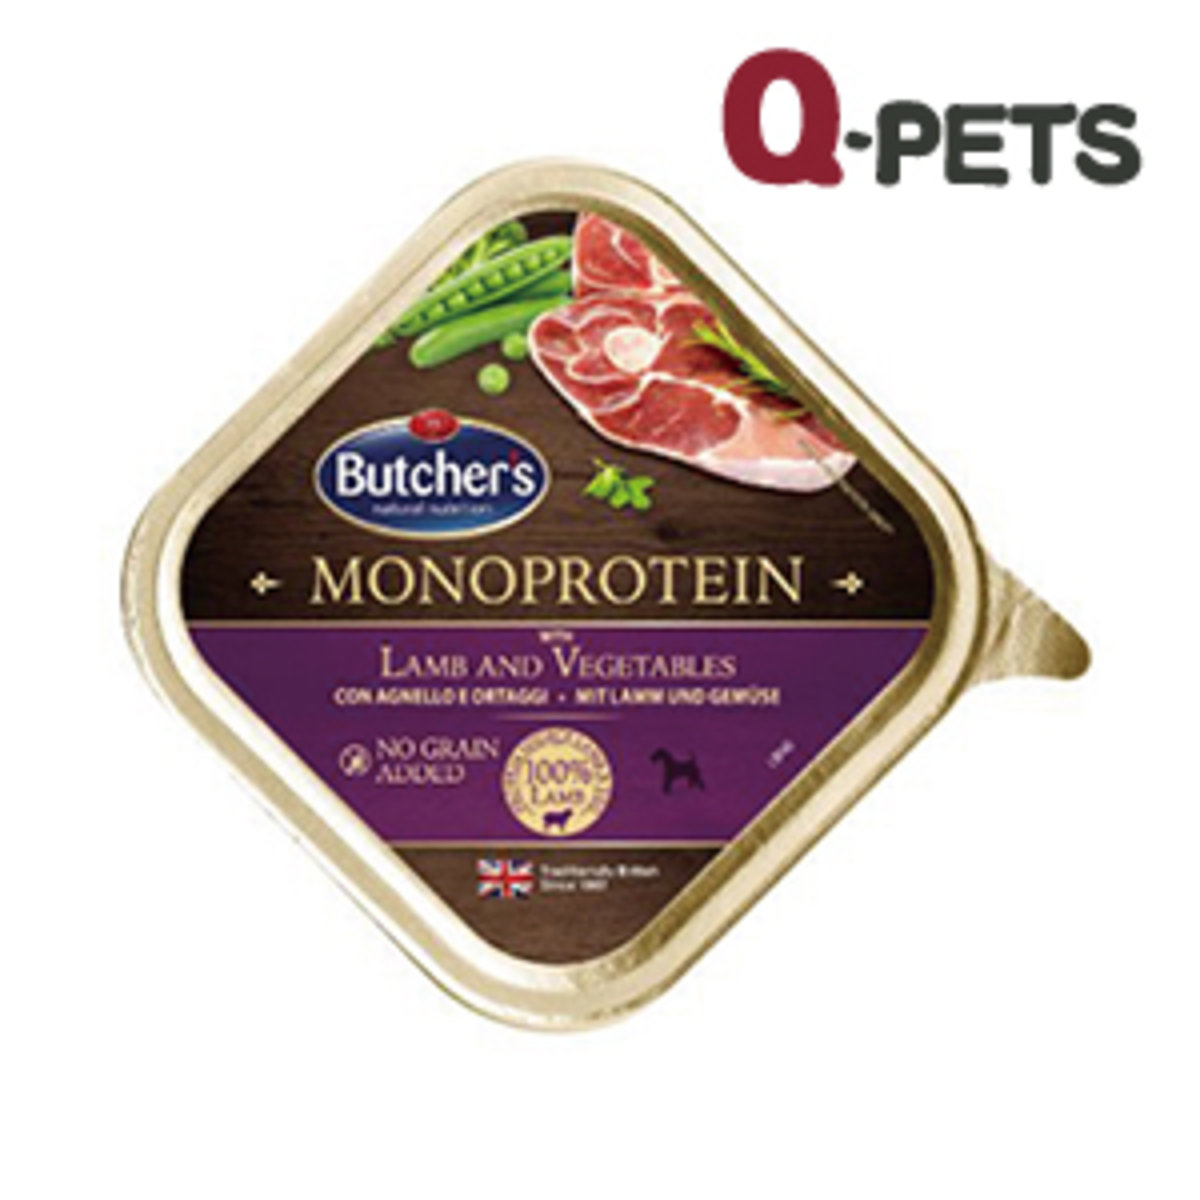 Butchers Monoprotein with Lamb n veg 150g